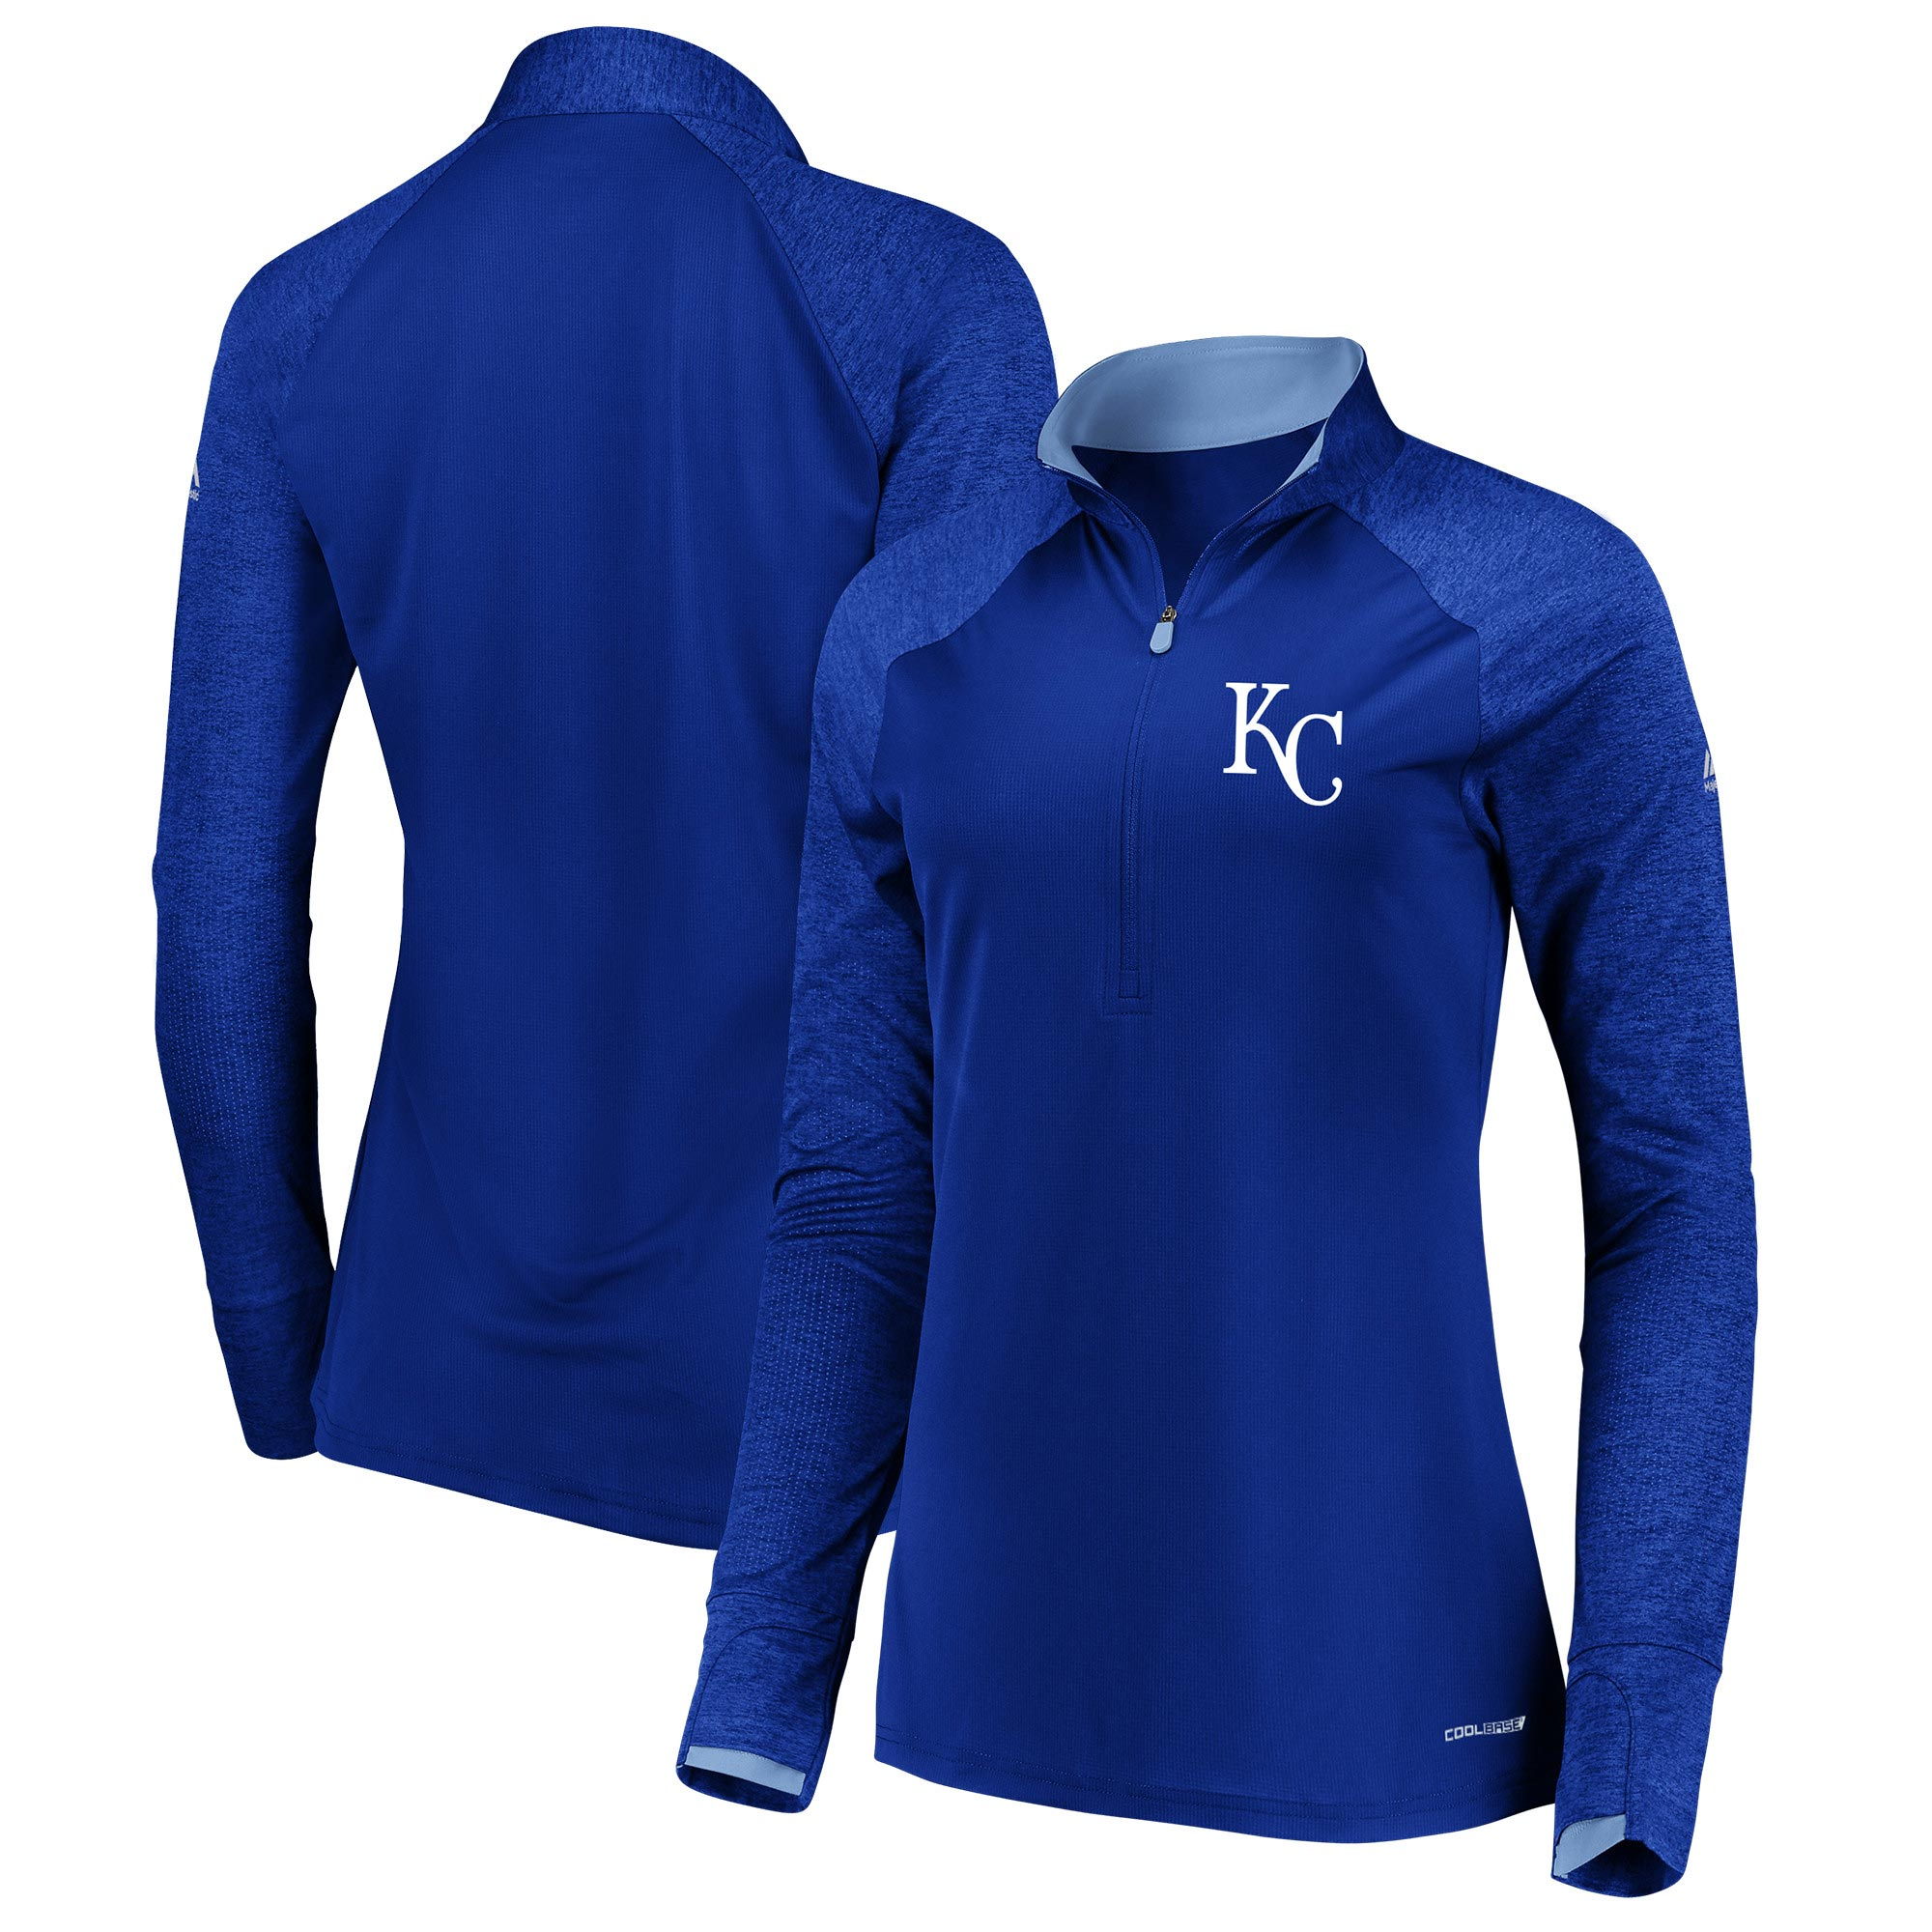 Kansas City Royals Majestic Women's Extremely Clear Cool Base Raglan 1 2-Zip Jacket Royal by MAJESTIC LSG